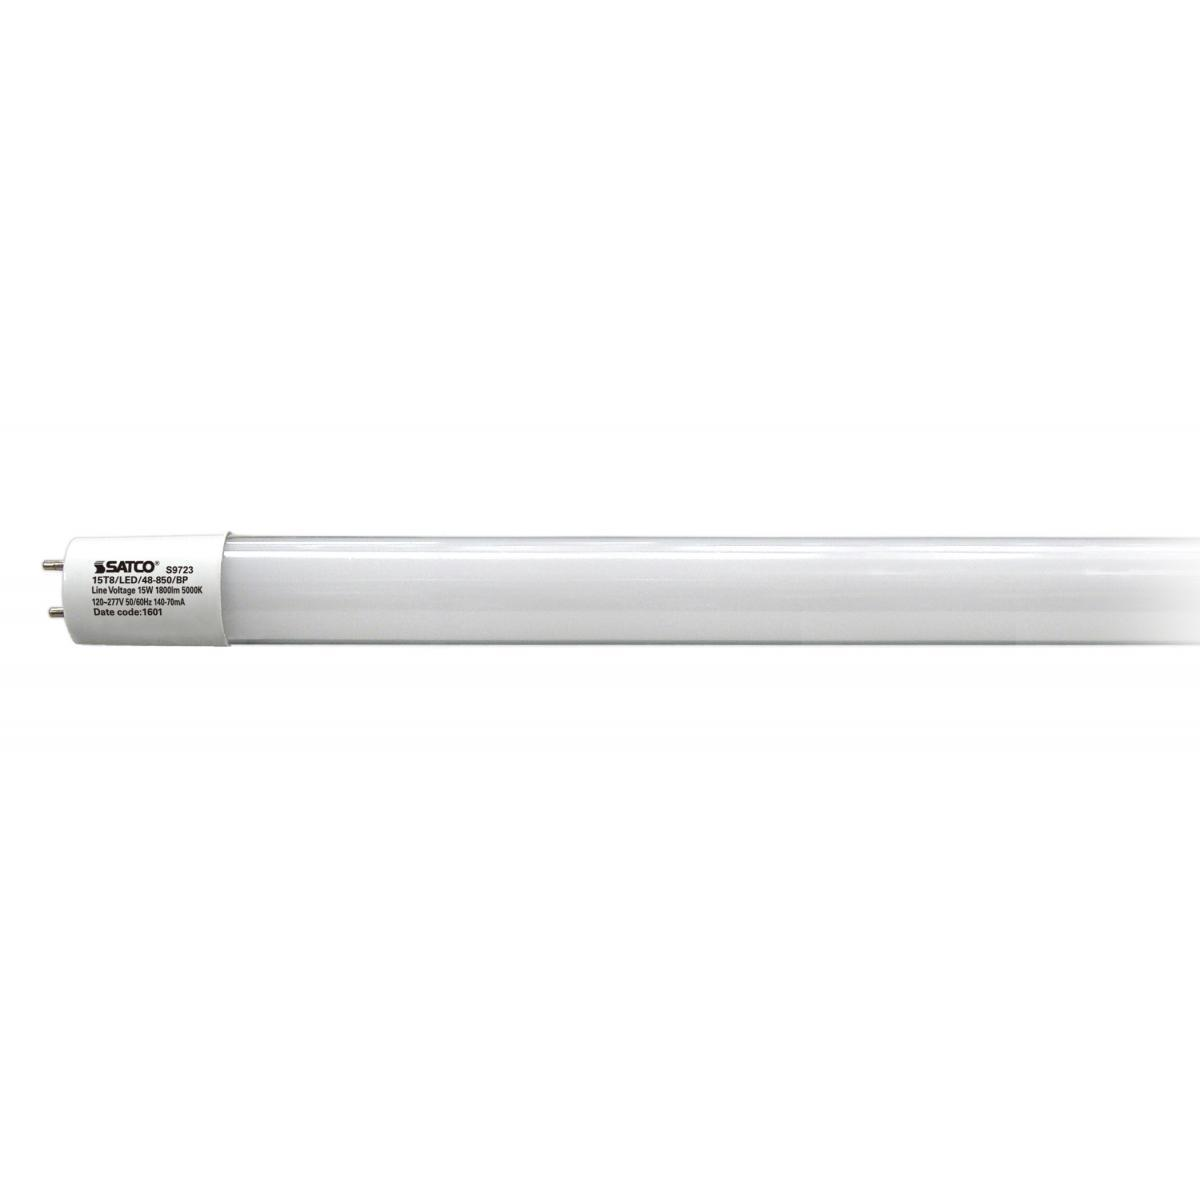 SATCO 15W LED T8 - 4 FT Fluorescent Tube Replacement - Bi...